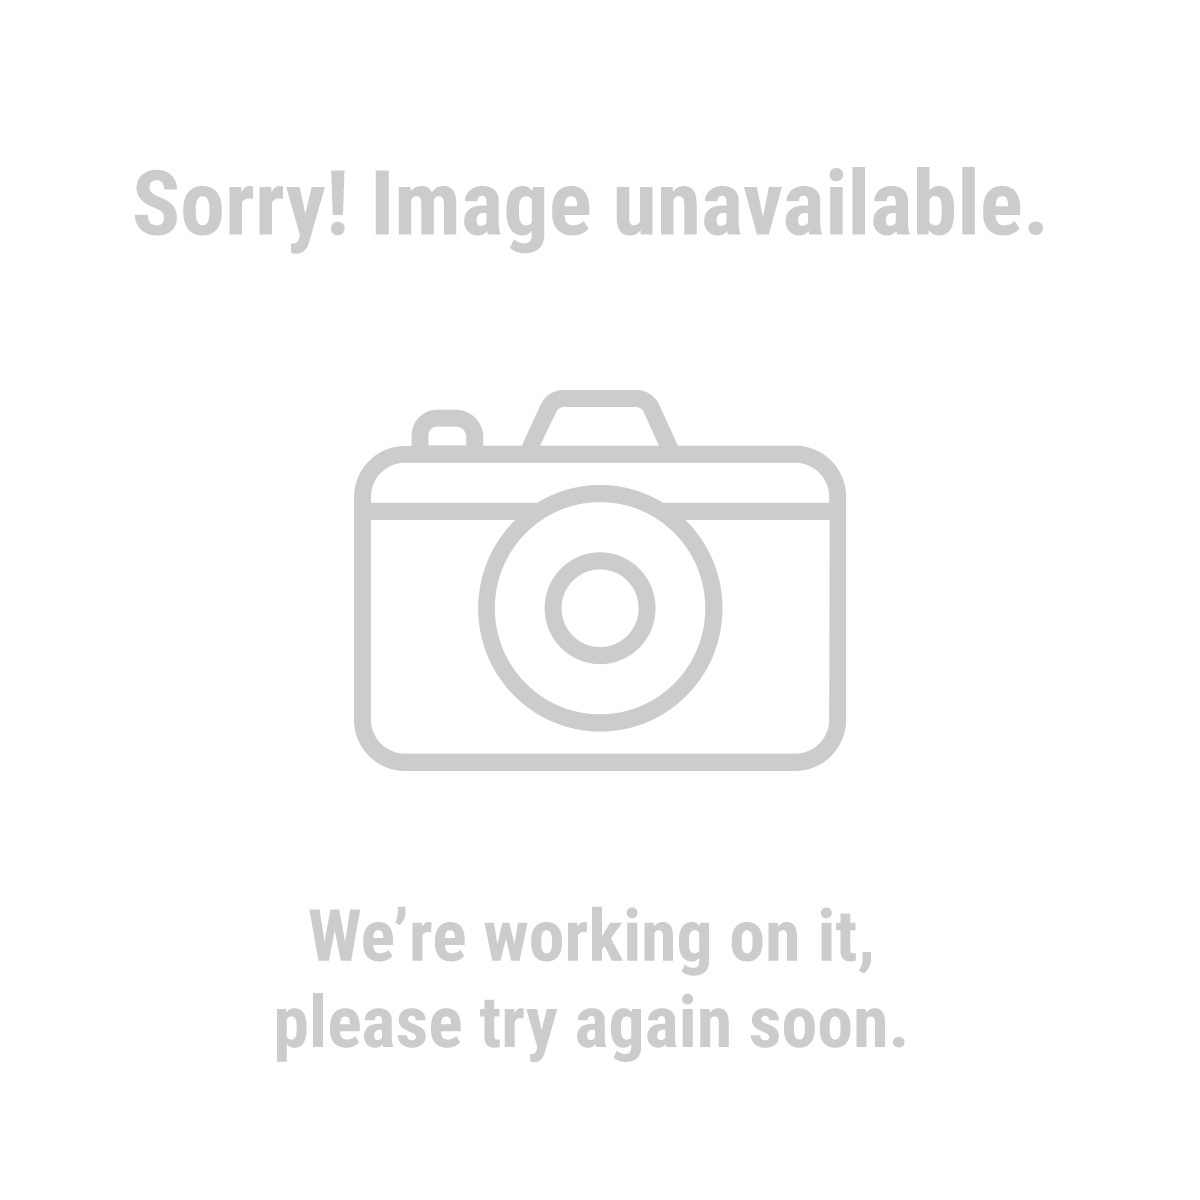 Central Pneumatic® 68066 1.8 Horsepower, 17 Gallon, 150 PSI Oilless Air Compressor